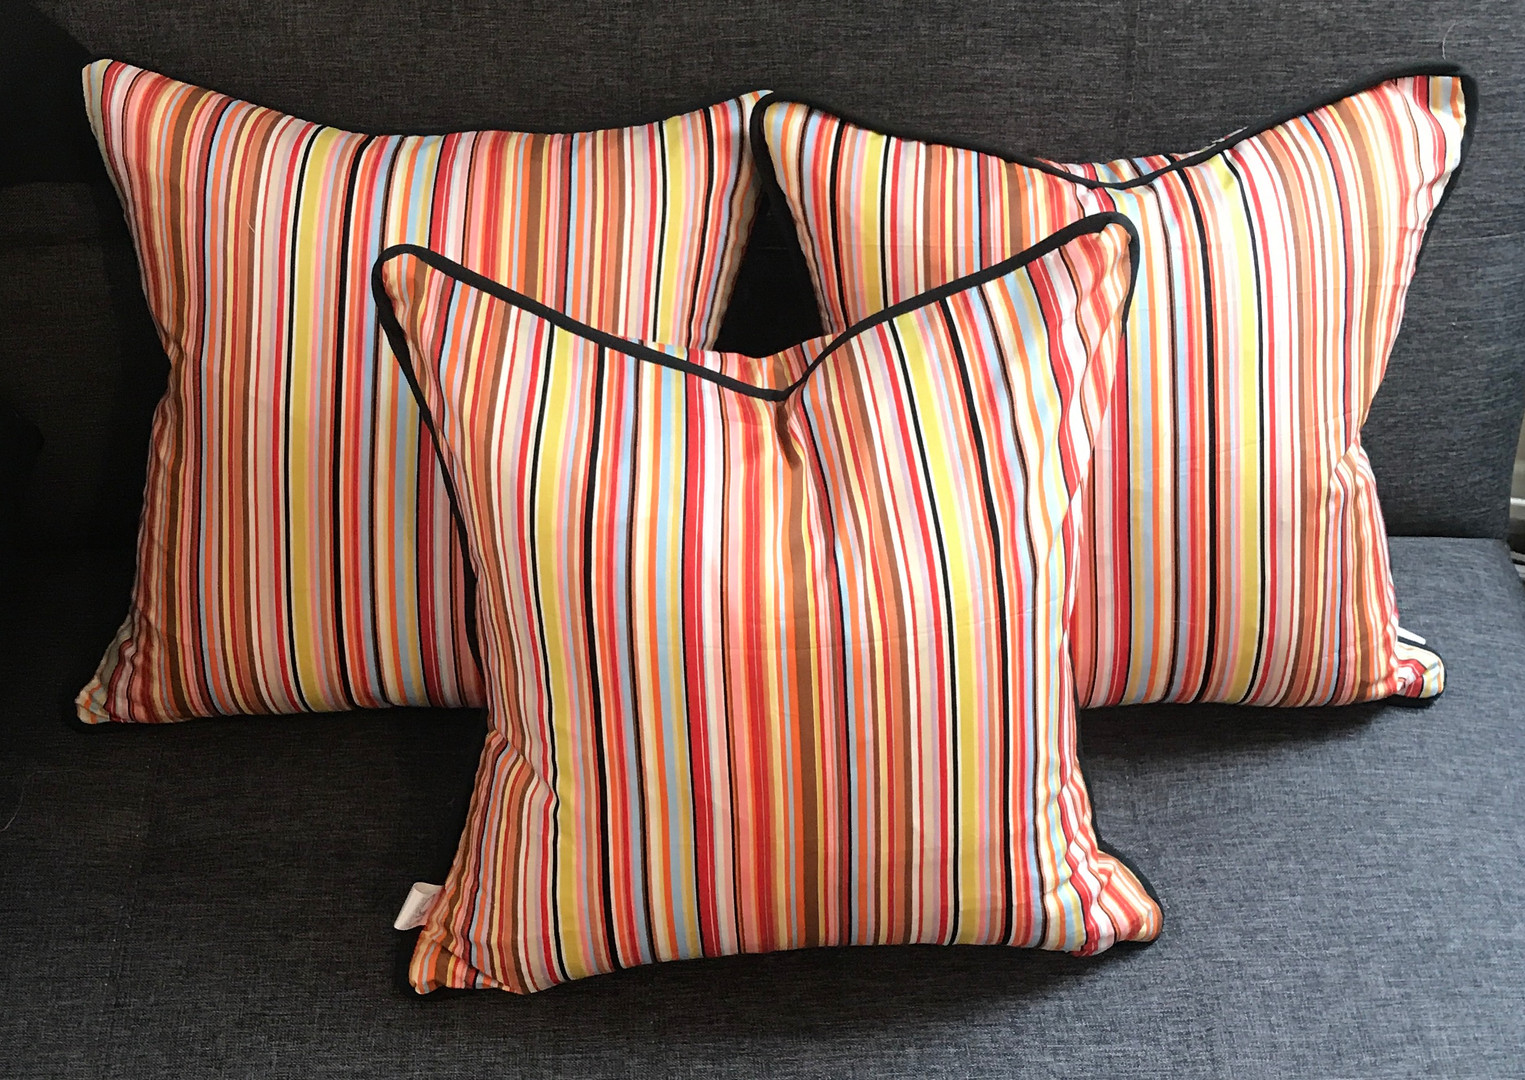 Paul Smith Inspired Piped Cushion